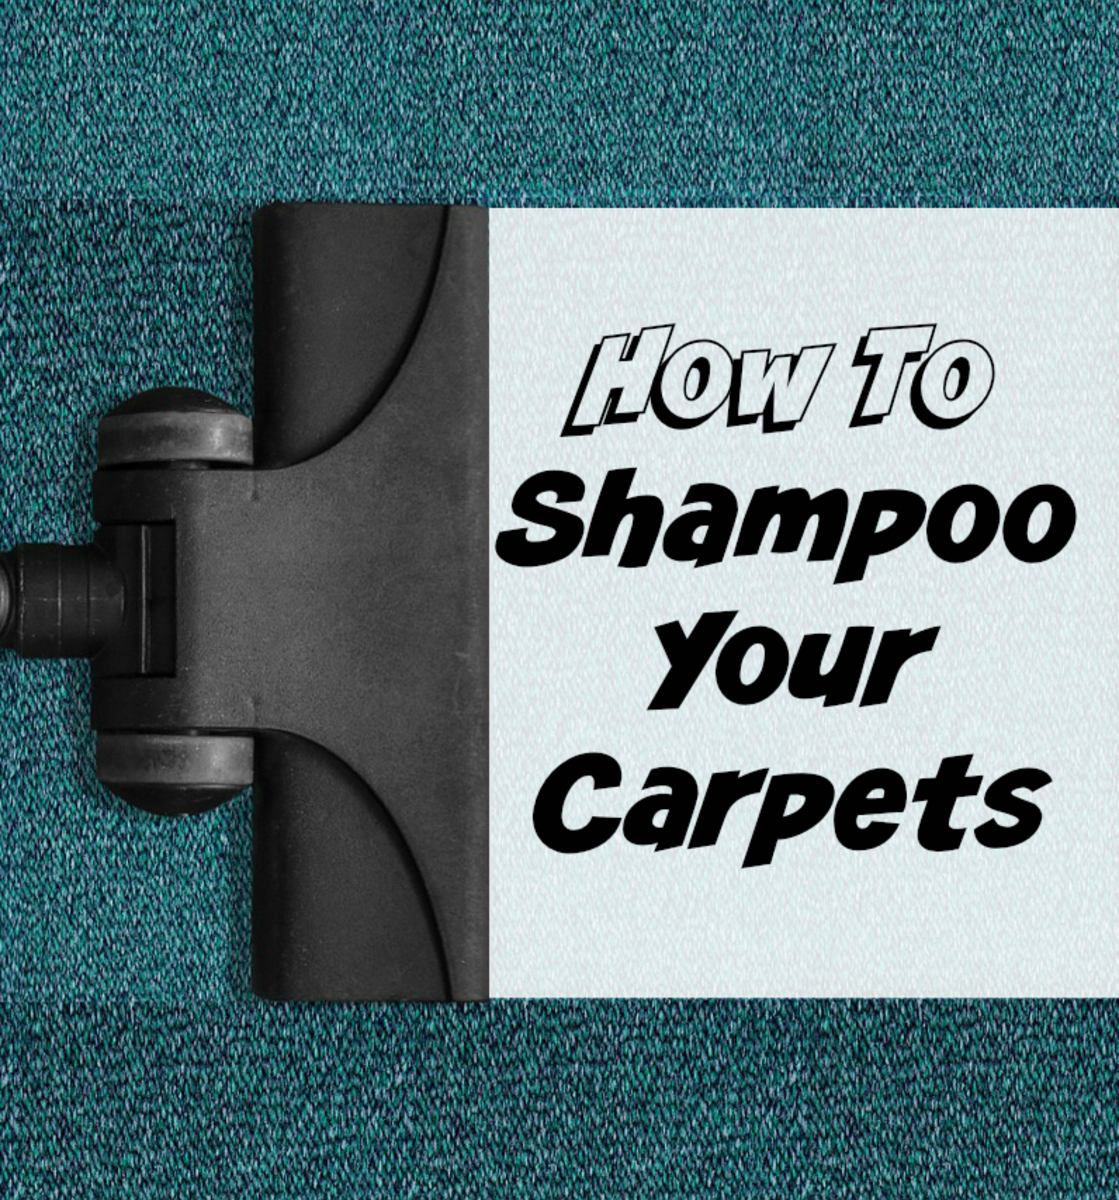 How to Shampoo Your Carpets, Including a Troubleshooting Guide